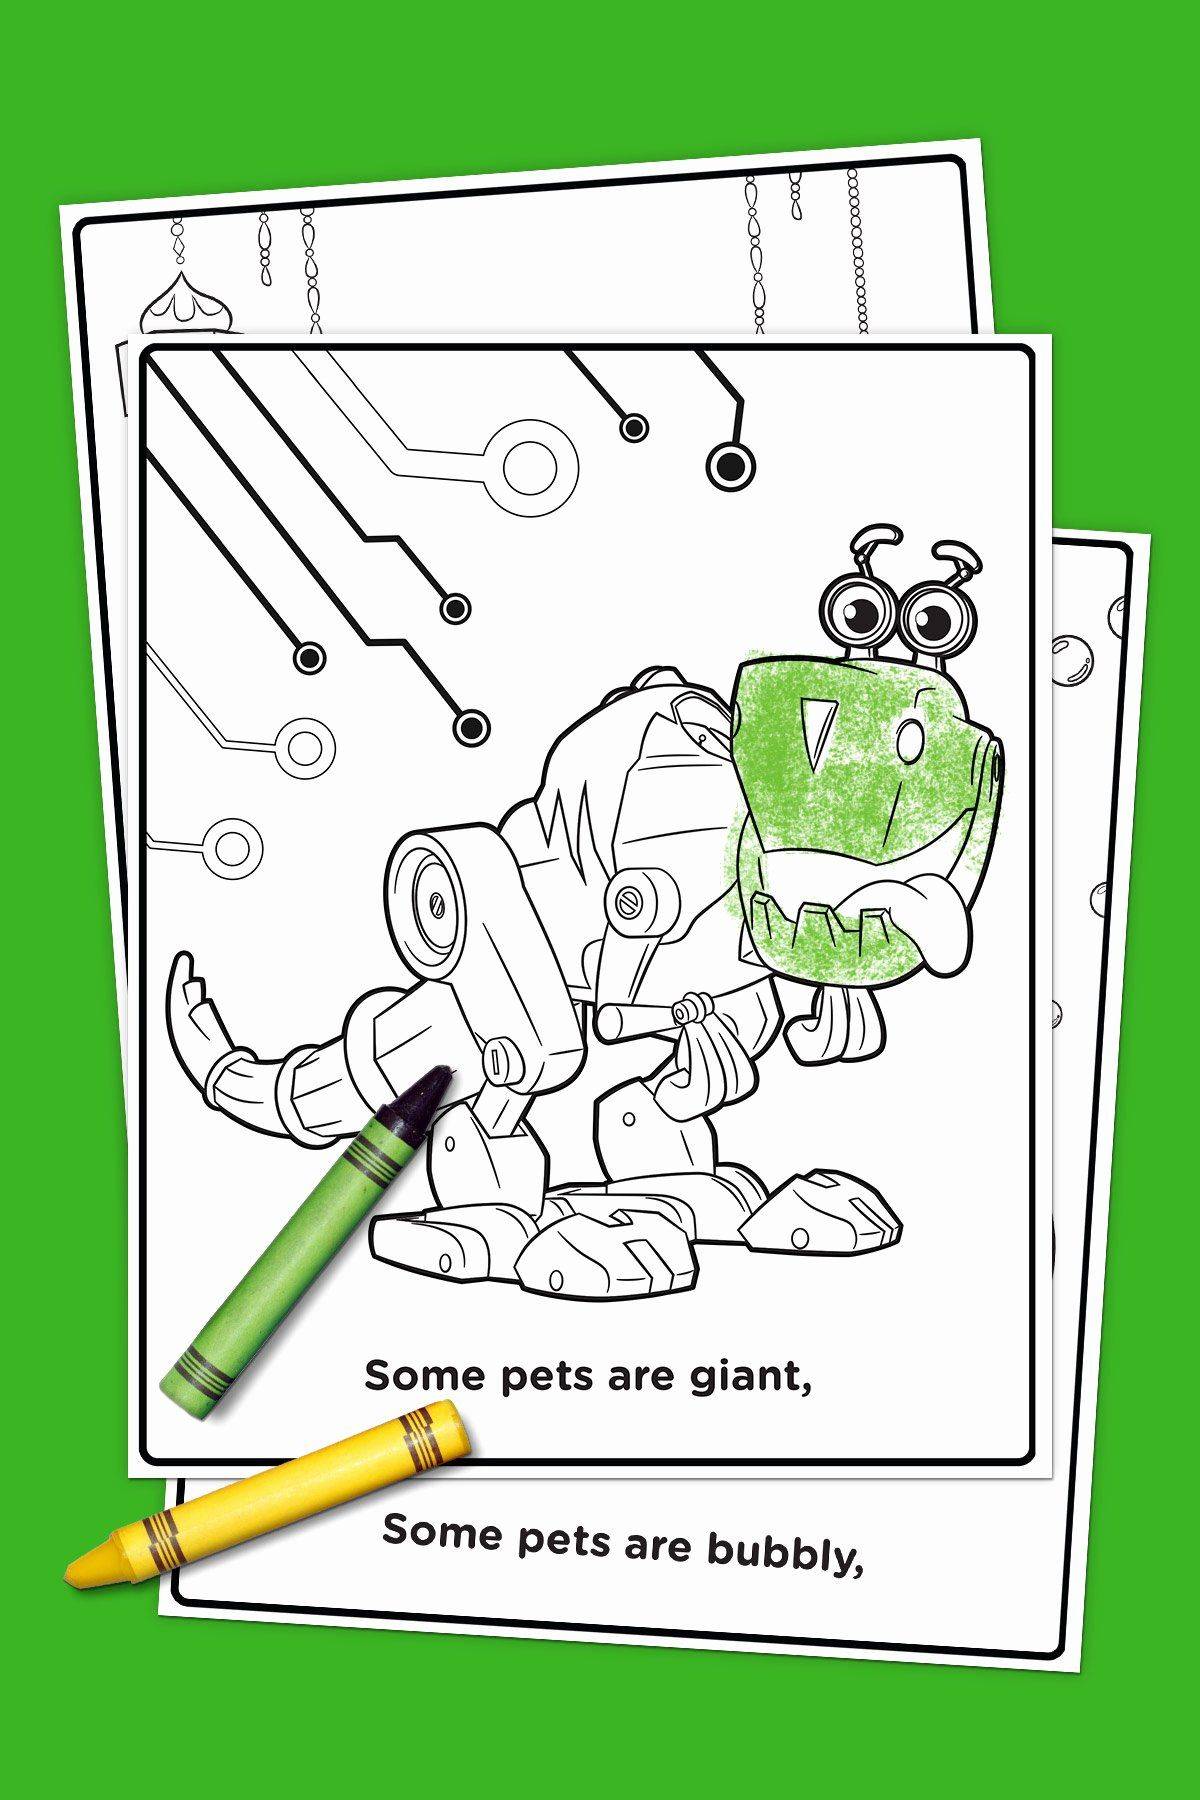 Nick Jr Coloring Book Lovely Coloring Pages Nick Jr Coloring Book Pages Youtube Sticker Coloring Books Toddler Coloring Book Best Toddler Books